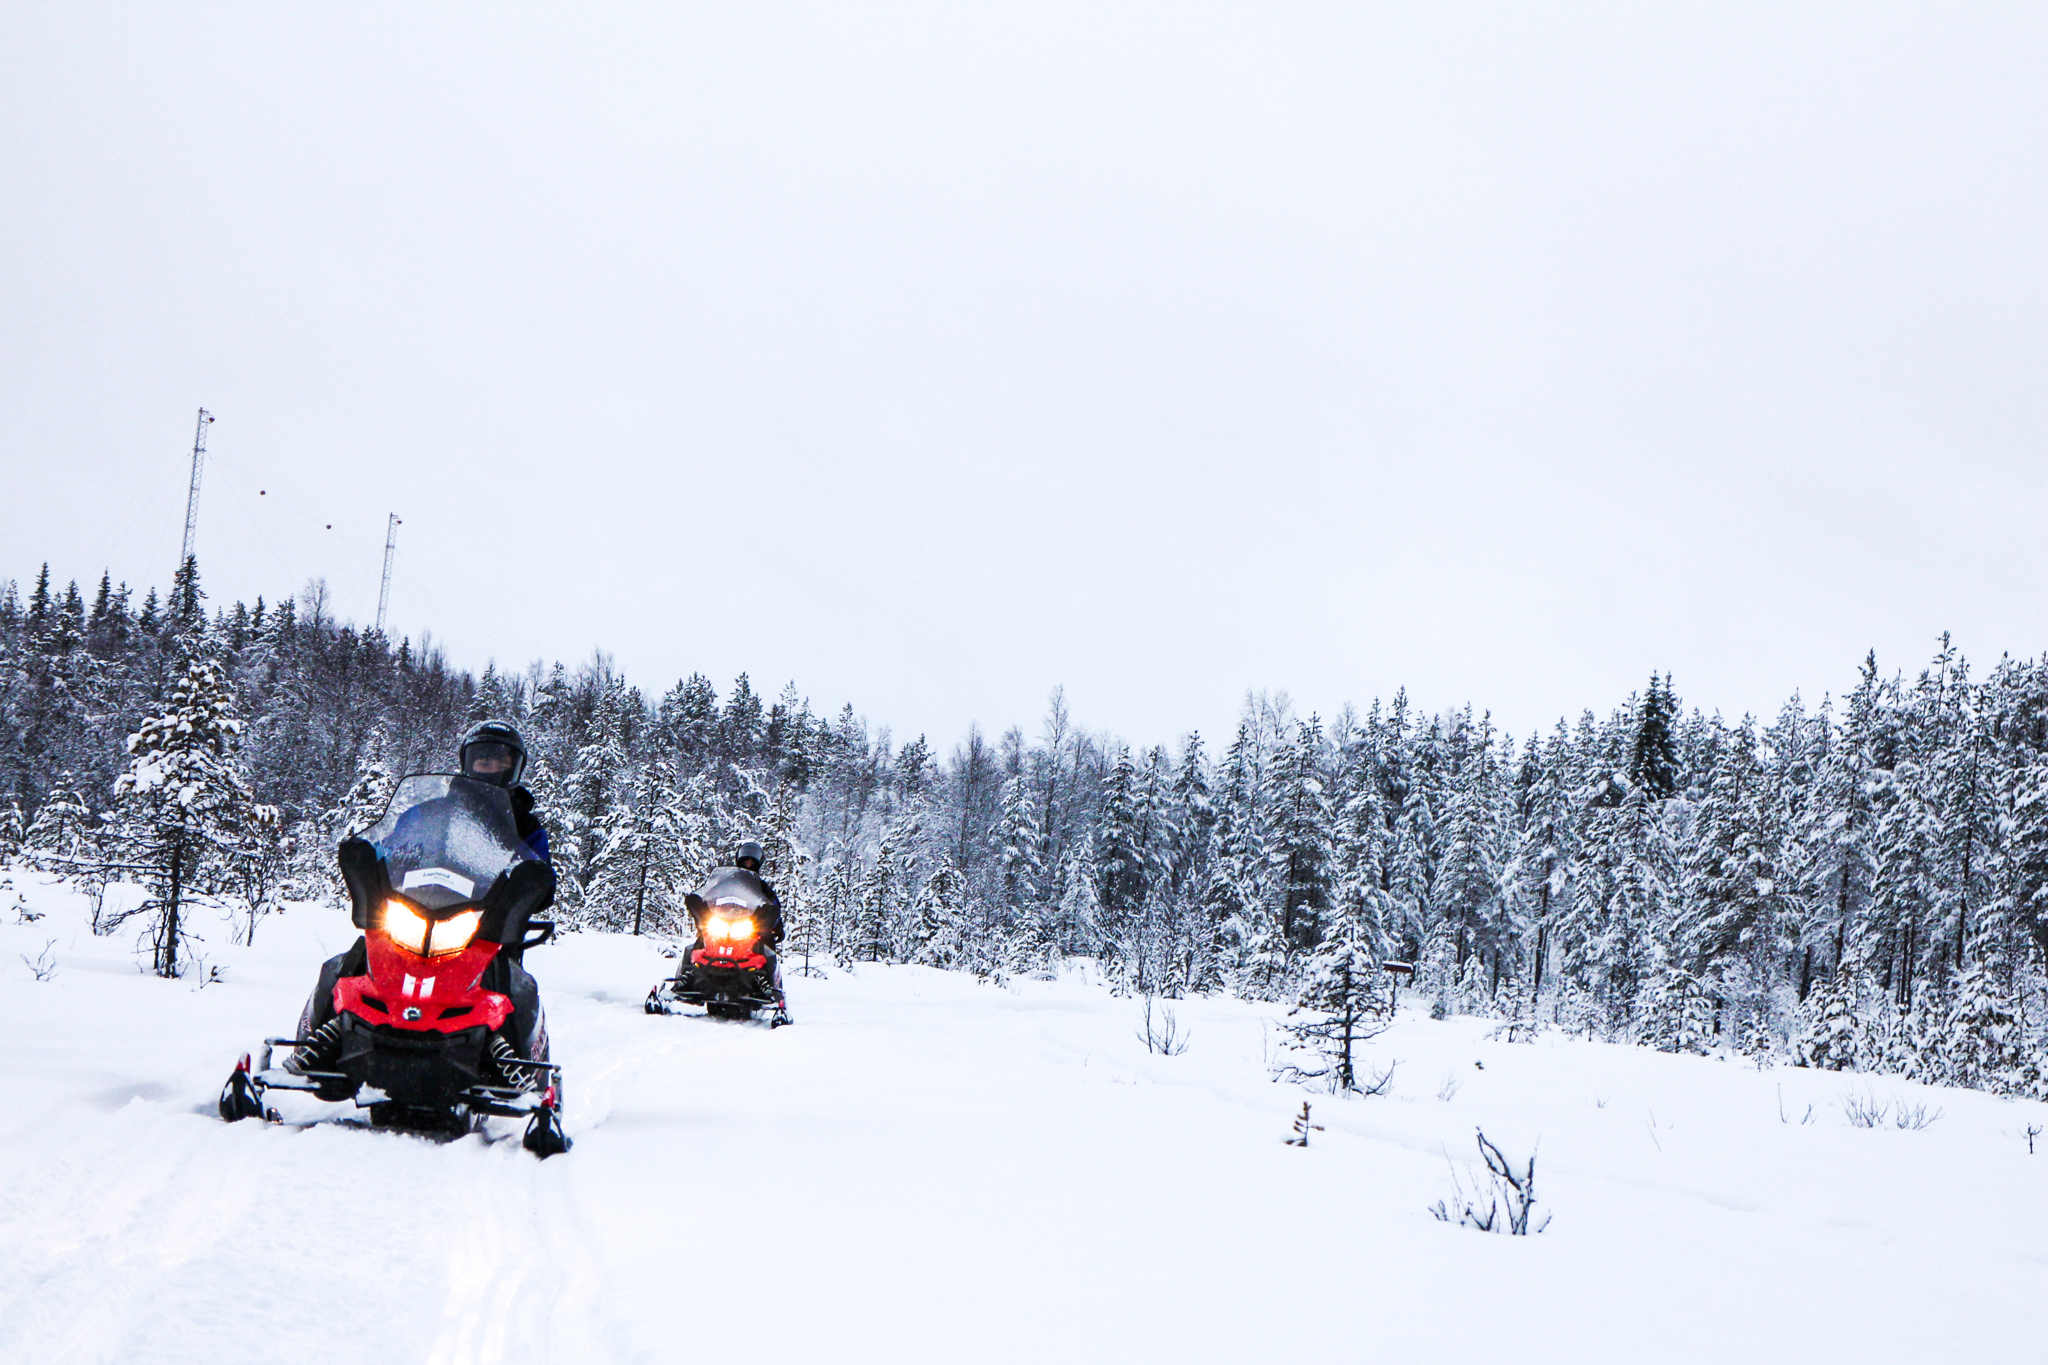 people driving snowmobiles in snowy forest